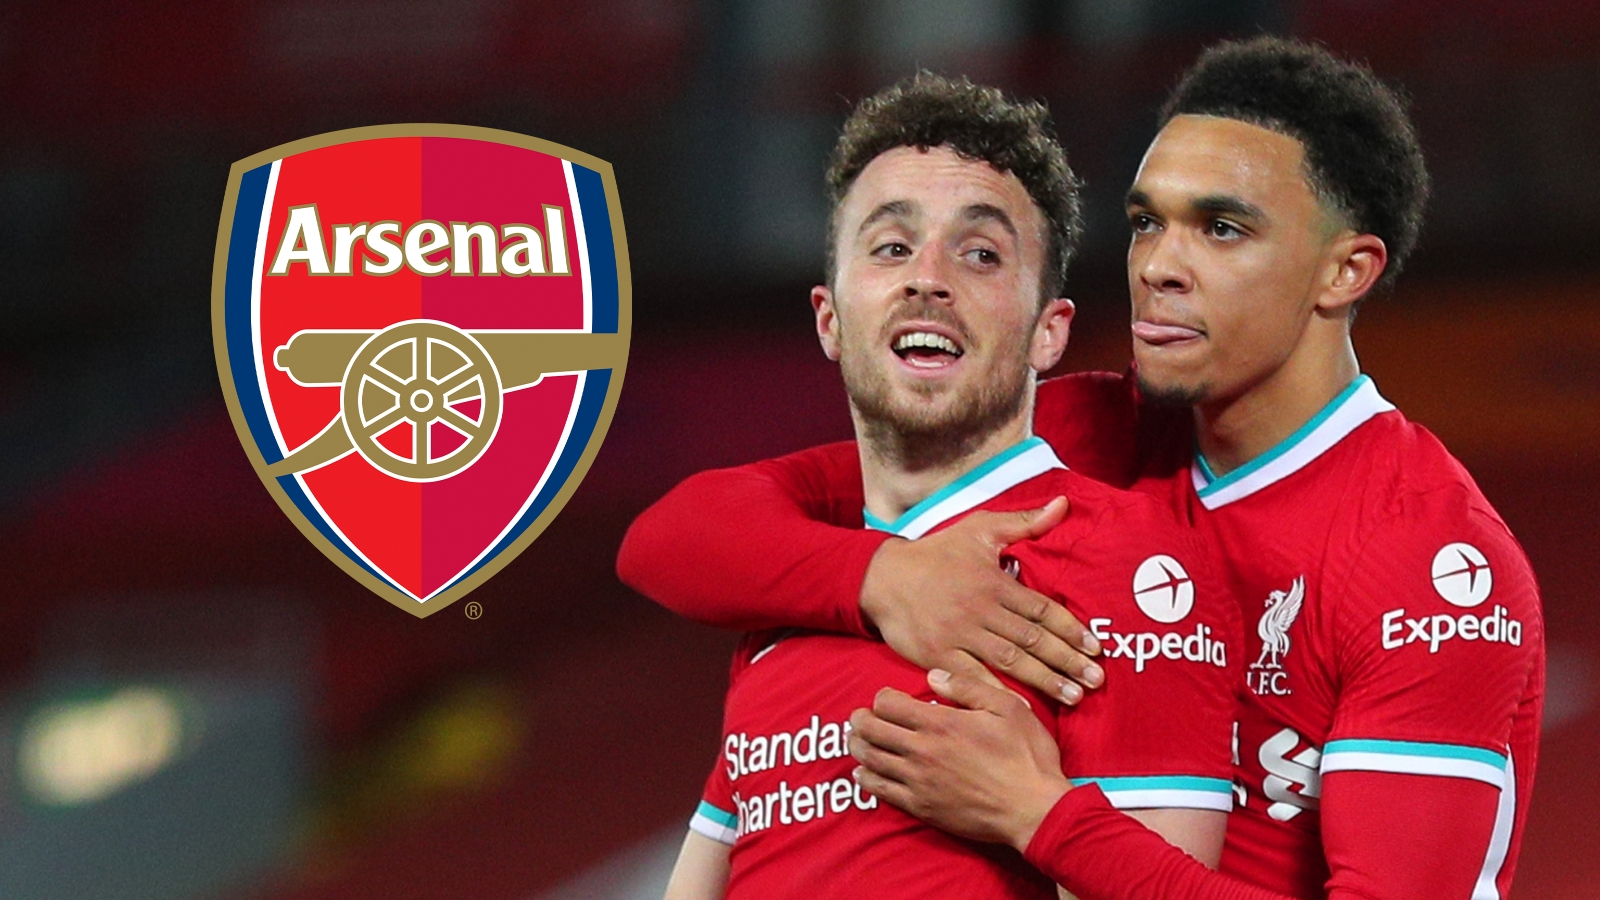 Transfer news and rumours LIVE: Arsenal failed in move for Jota